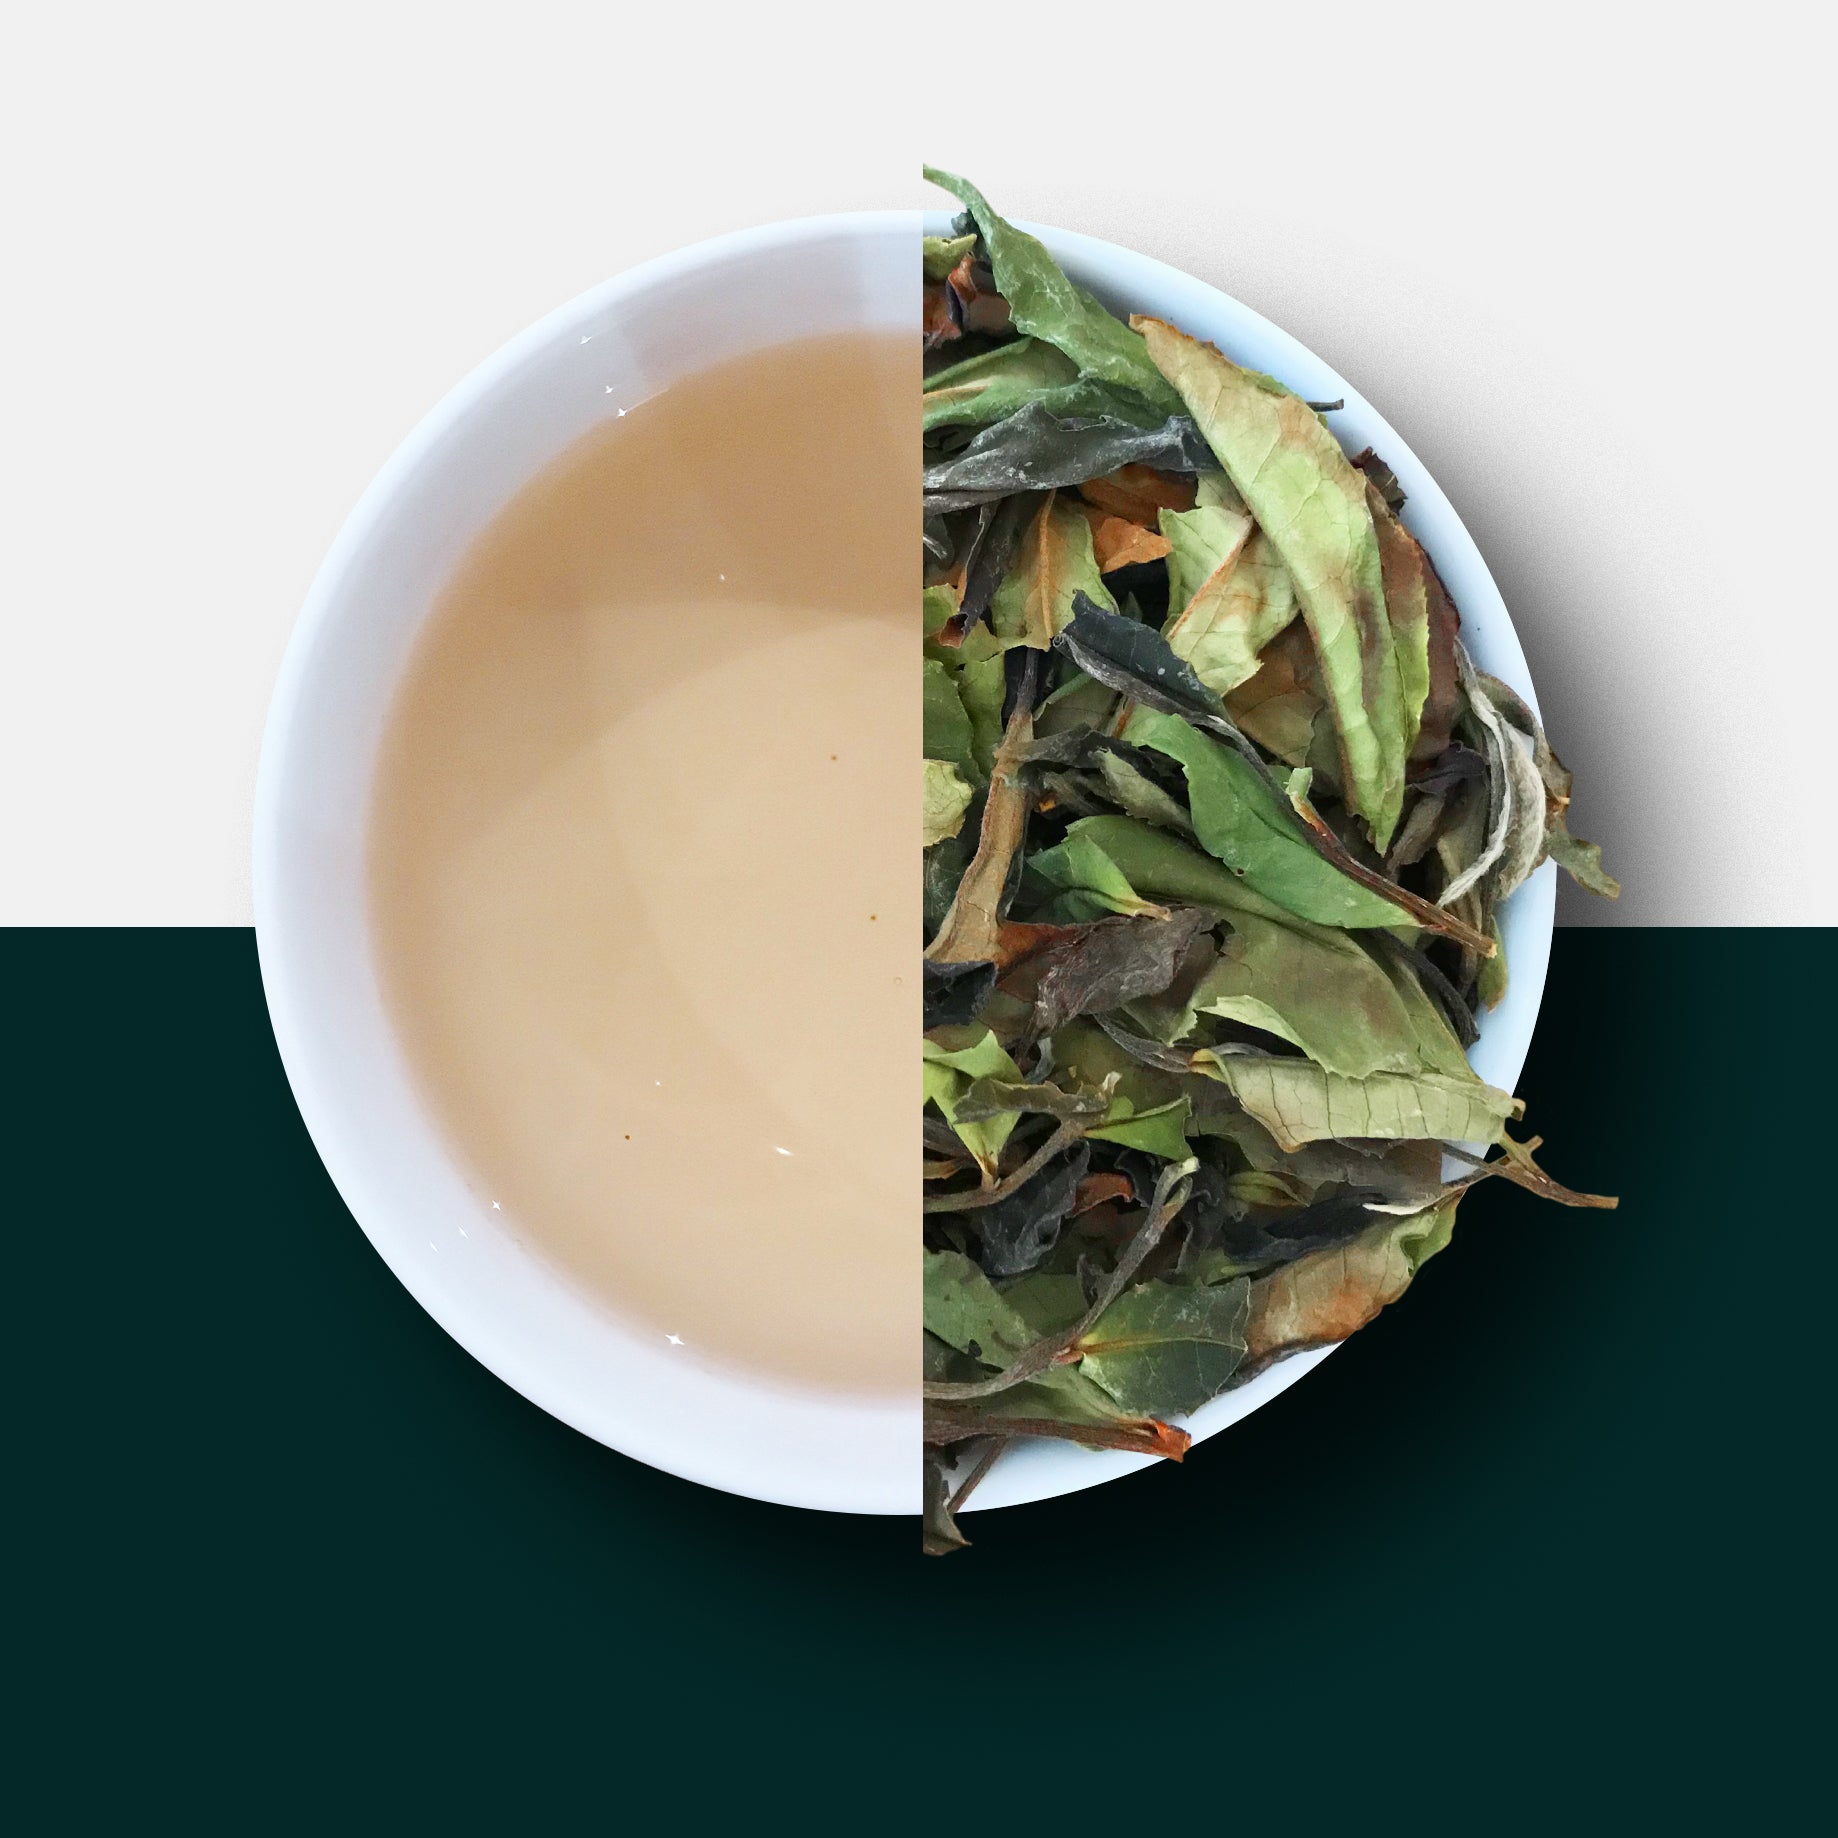 White Tea - Malawian Rare White Peony Loose Leaf Tea and Liquor